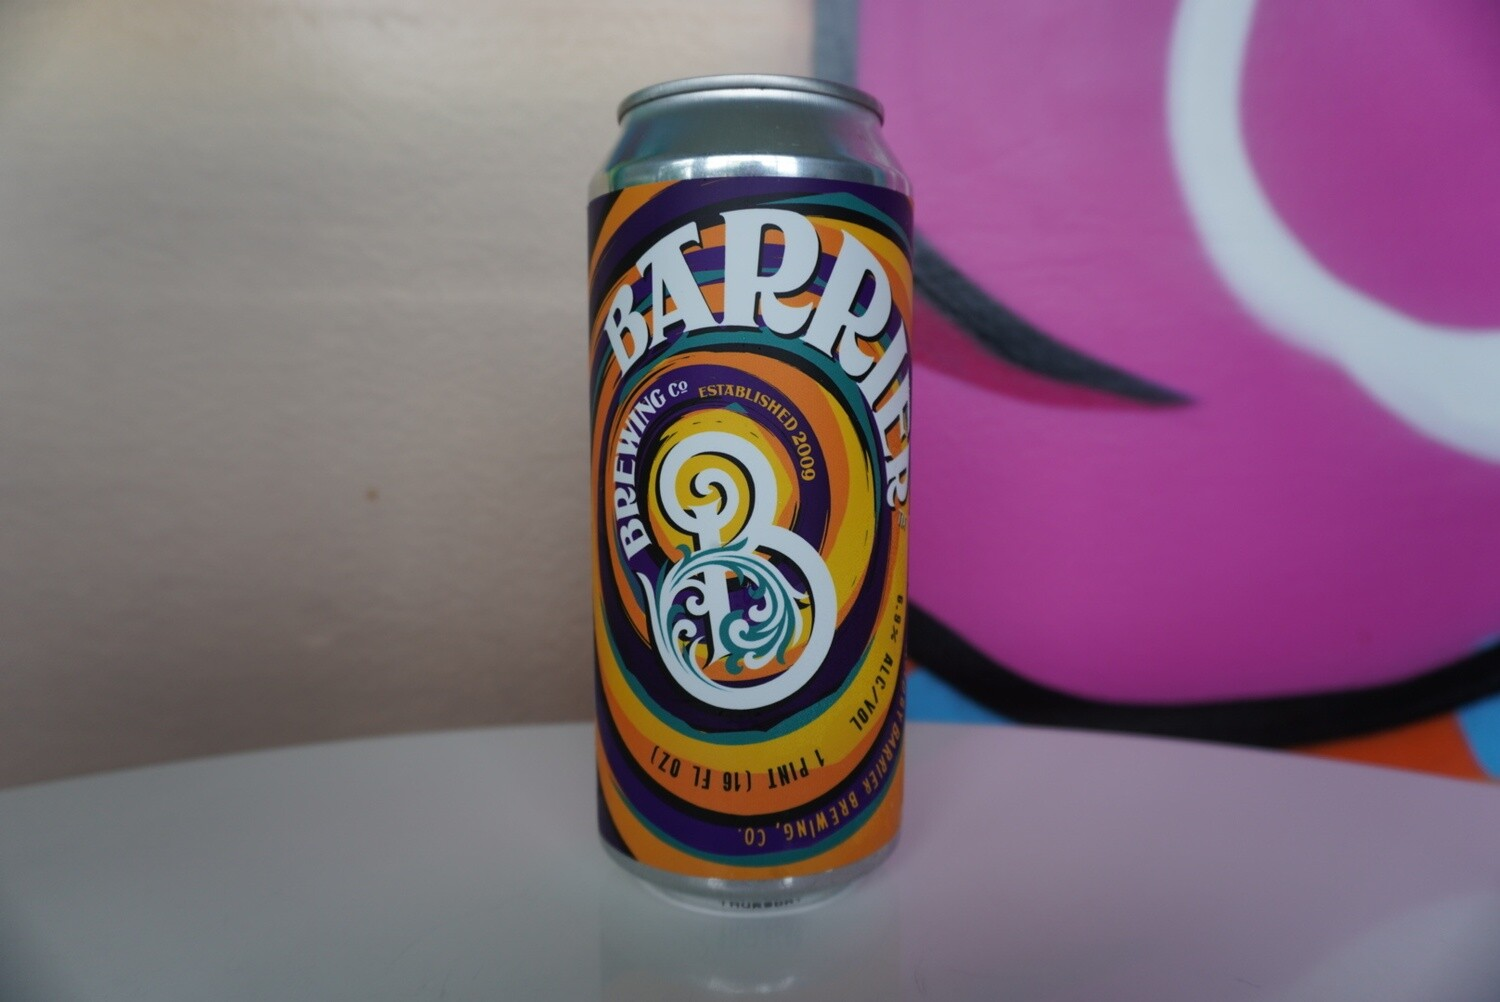 Barrier Brewing - What Day is it? Thursday - New England IPA - 6.9% ABV - 16oz Can